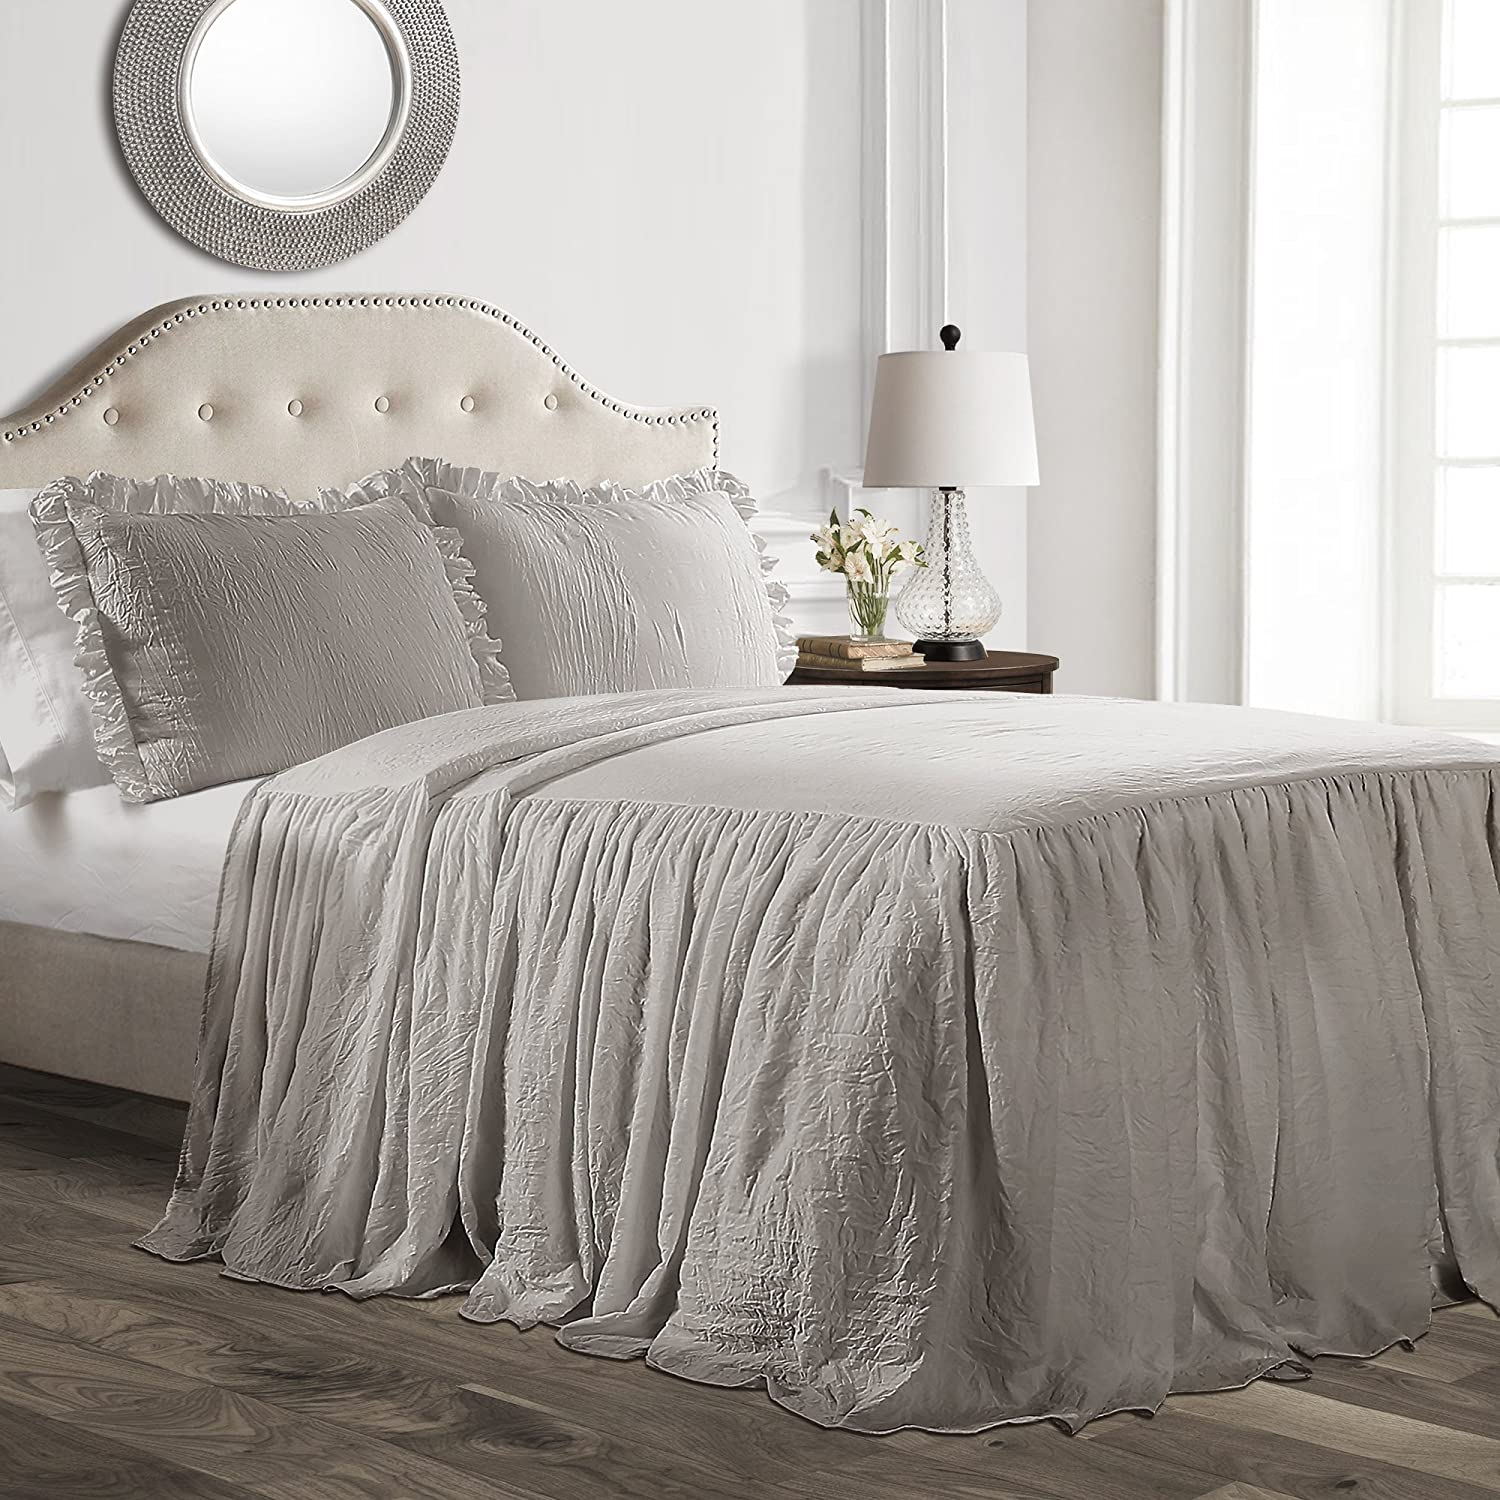 Lush Decor Lush Décor Ruffle Skirt Bedspread Gray Shabby Chic Farmhouse Style Lightweight 3 Piece Set - King,